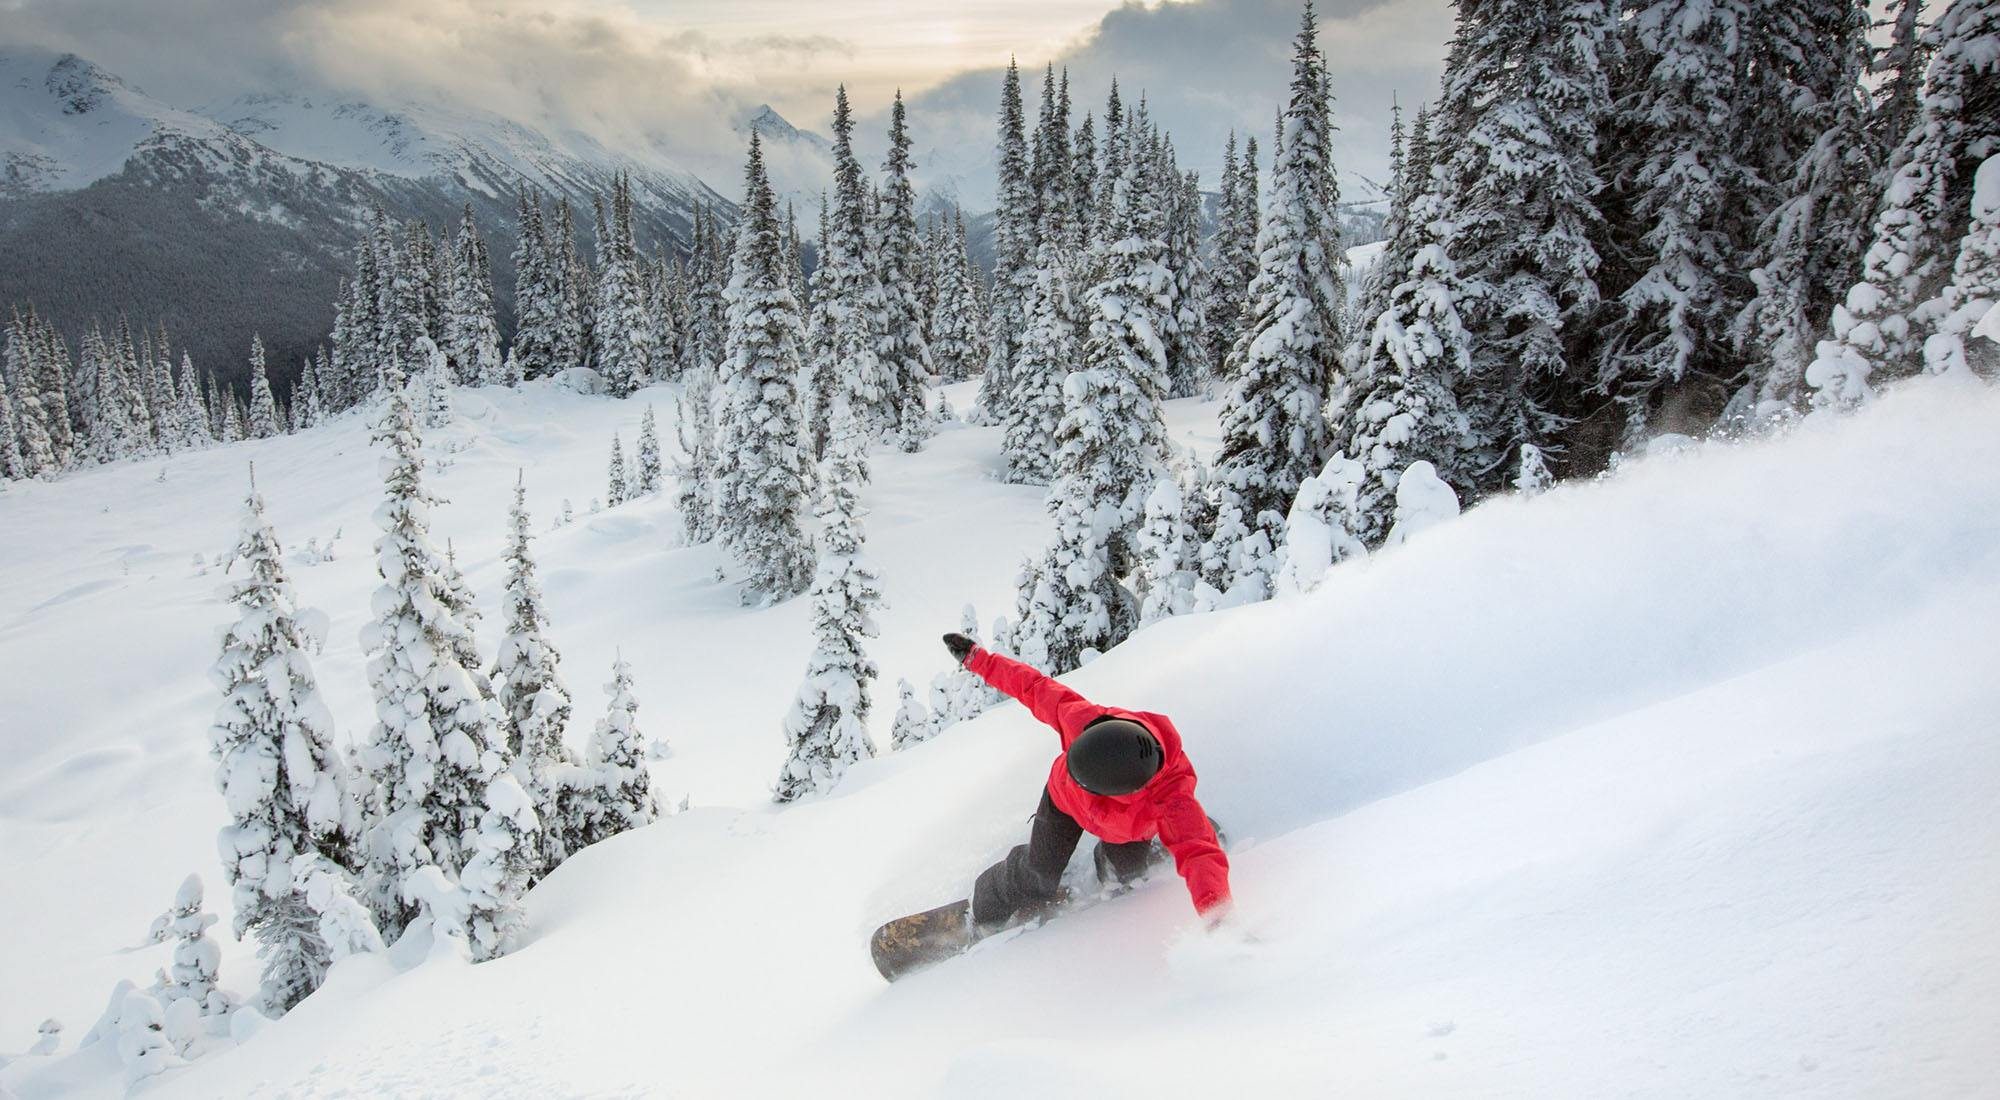 Whistler Blackcomb warns snowboarders and skiers to keep off mountain